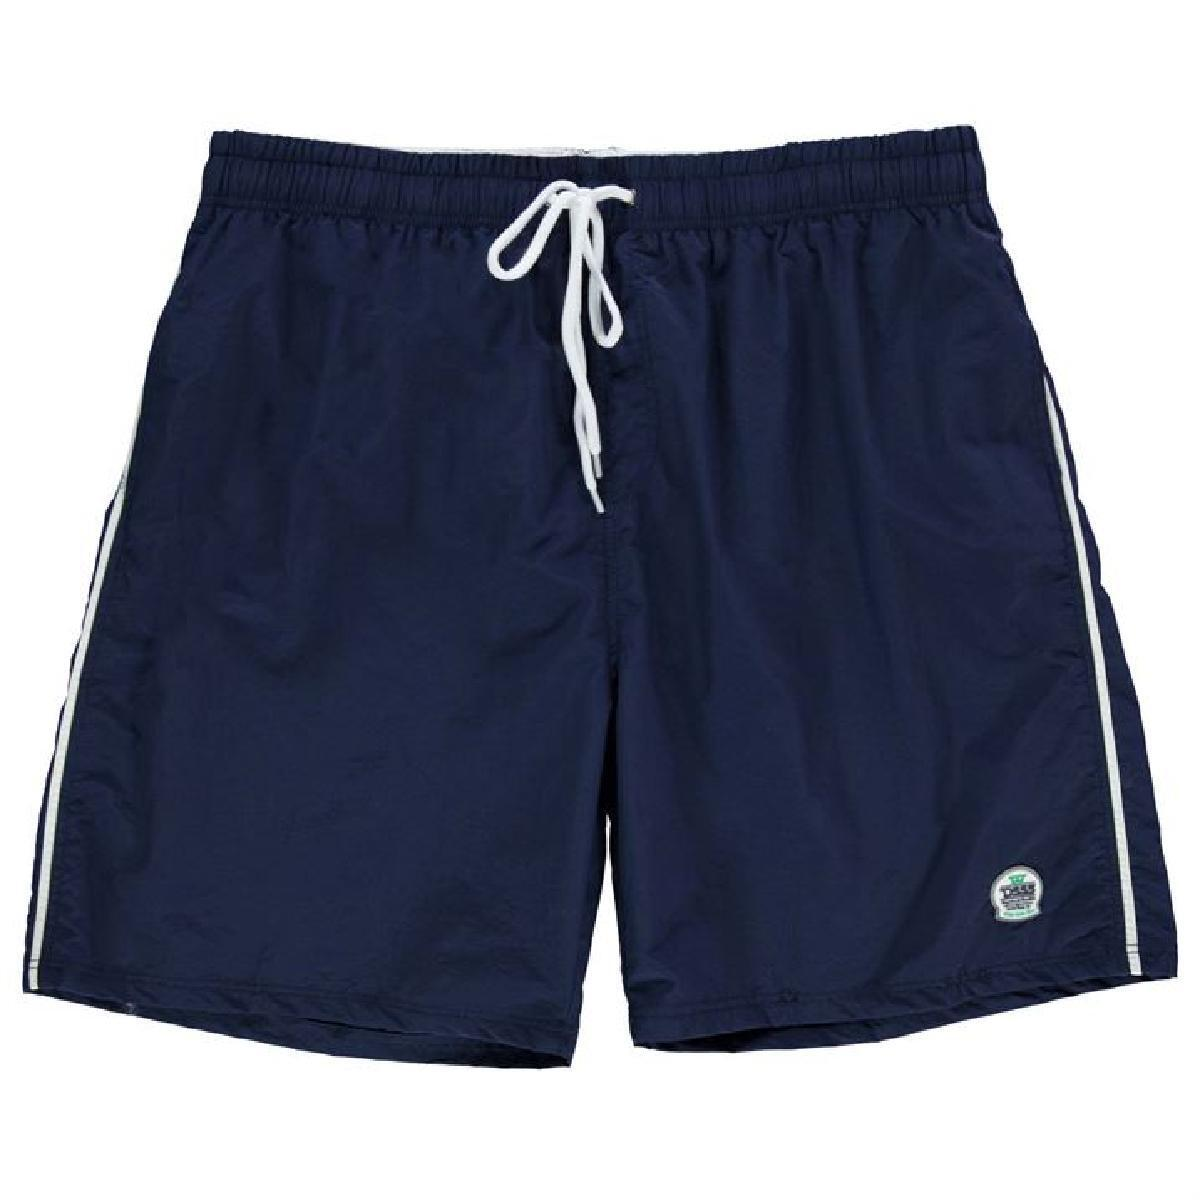 D555 Men's Swimming Shorts Swim Trunks Swim Shorts Shorts 7XL